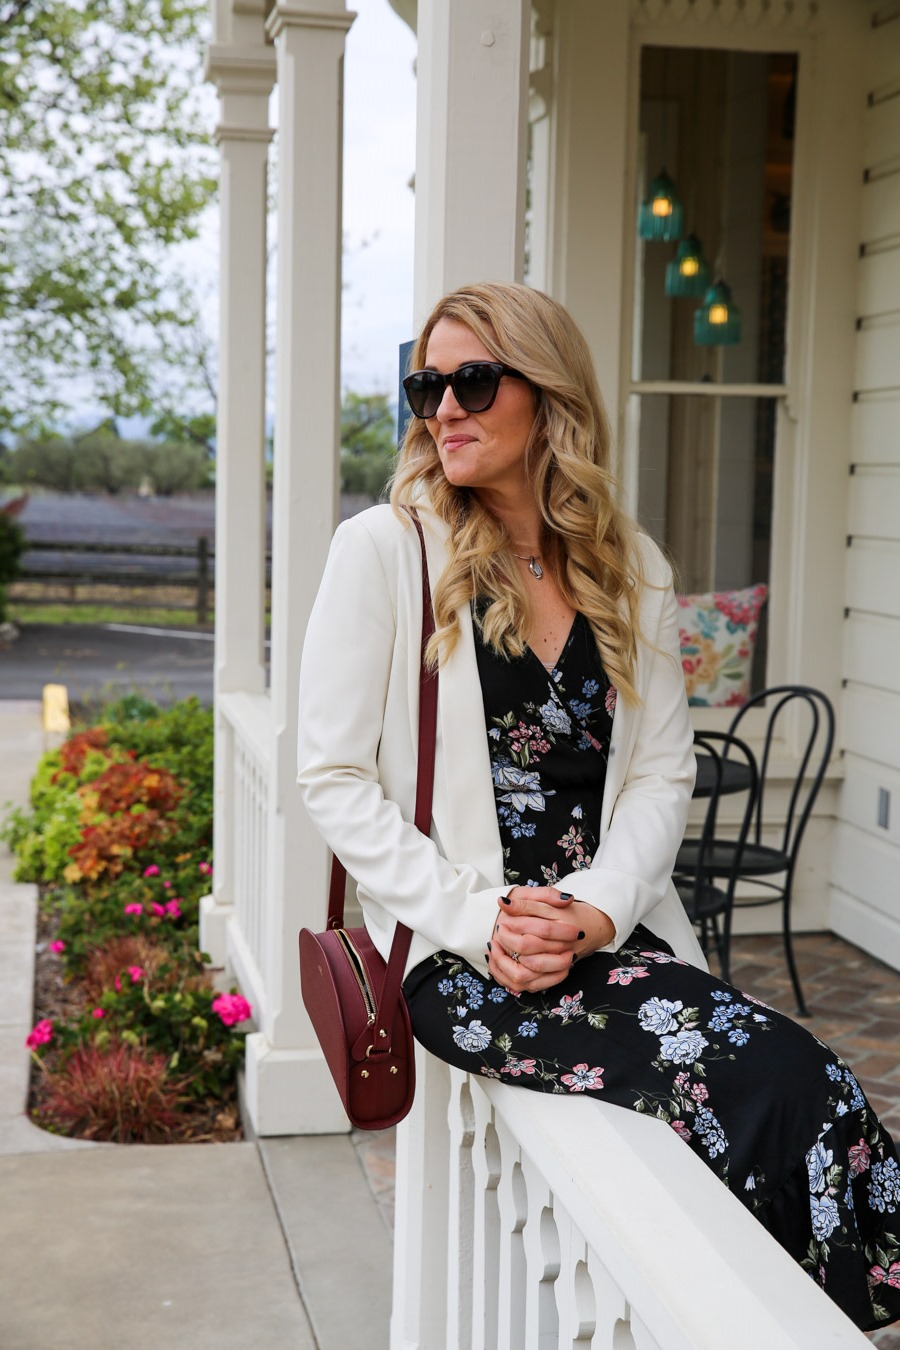 Wine Tasting Outfits - White Blazer and Dress Outfit